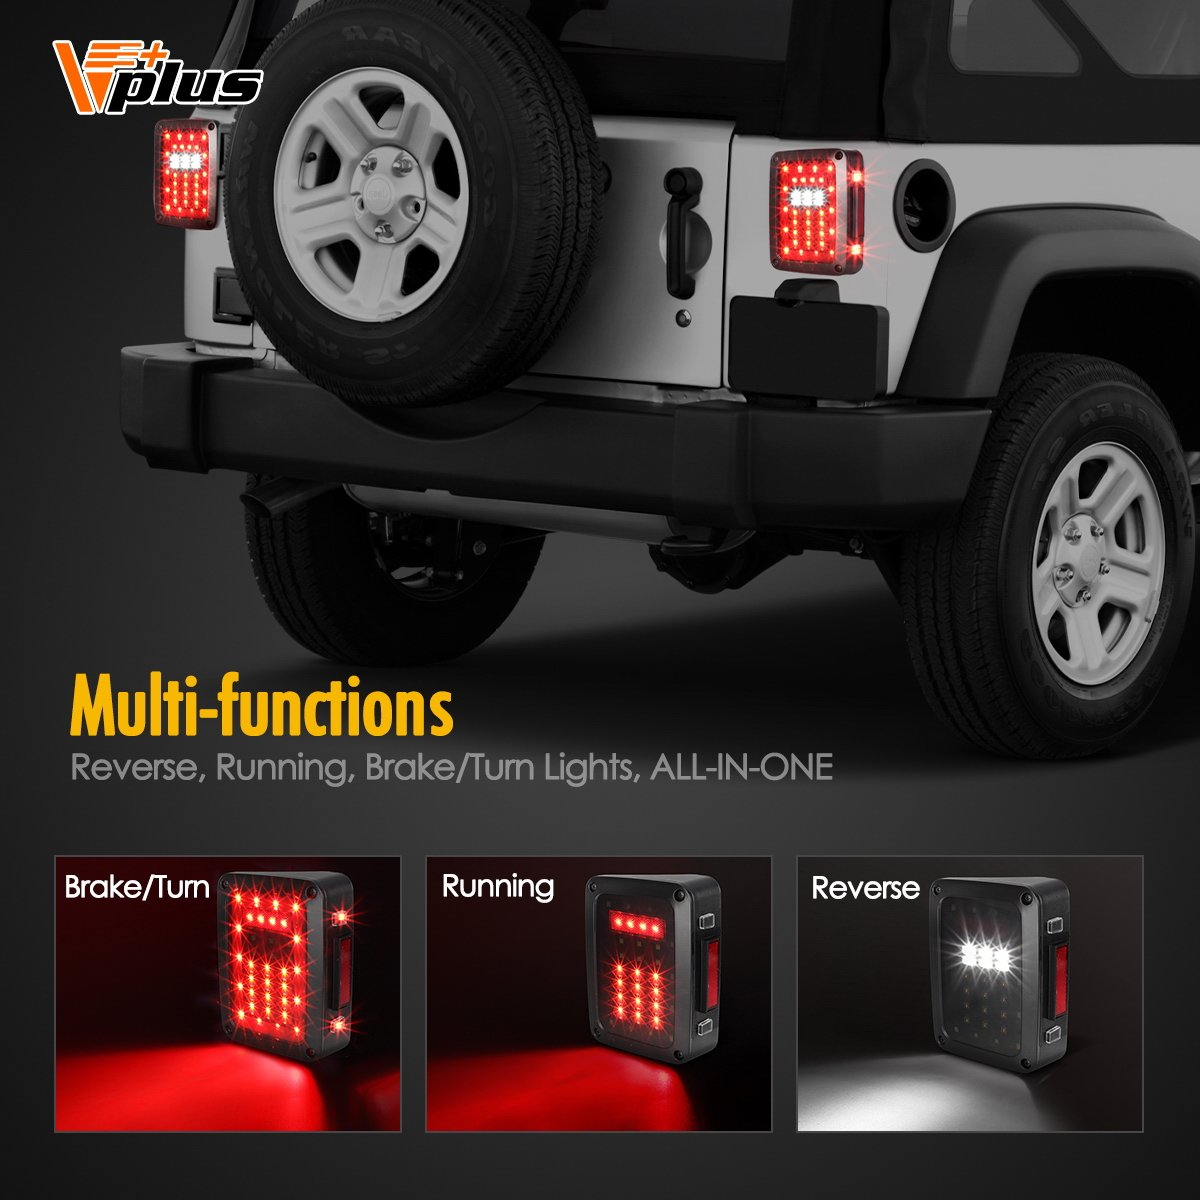 Vplus Led Tail Lights Assembly Smoke Lens Brake Turn Cj Jeep Trailer Wiring Harness 2014 Stop Reverse Drl Light Lamp Replacement For 2007 2017 Wrangler Yj Jk Tj Jku Sports